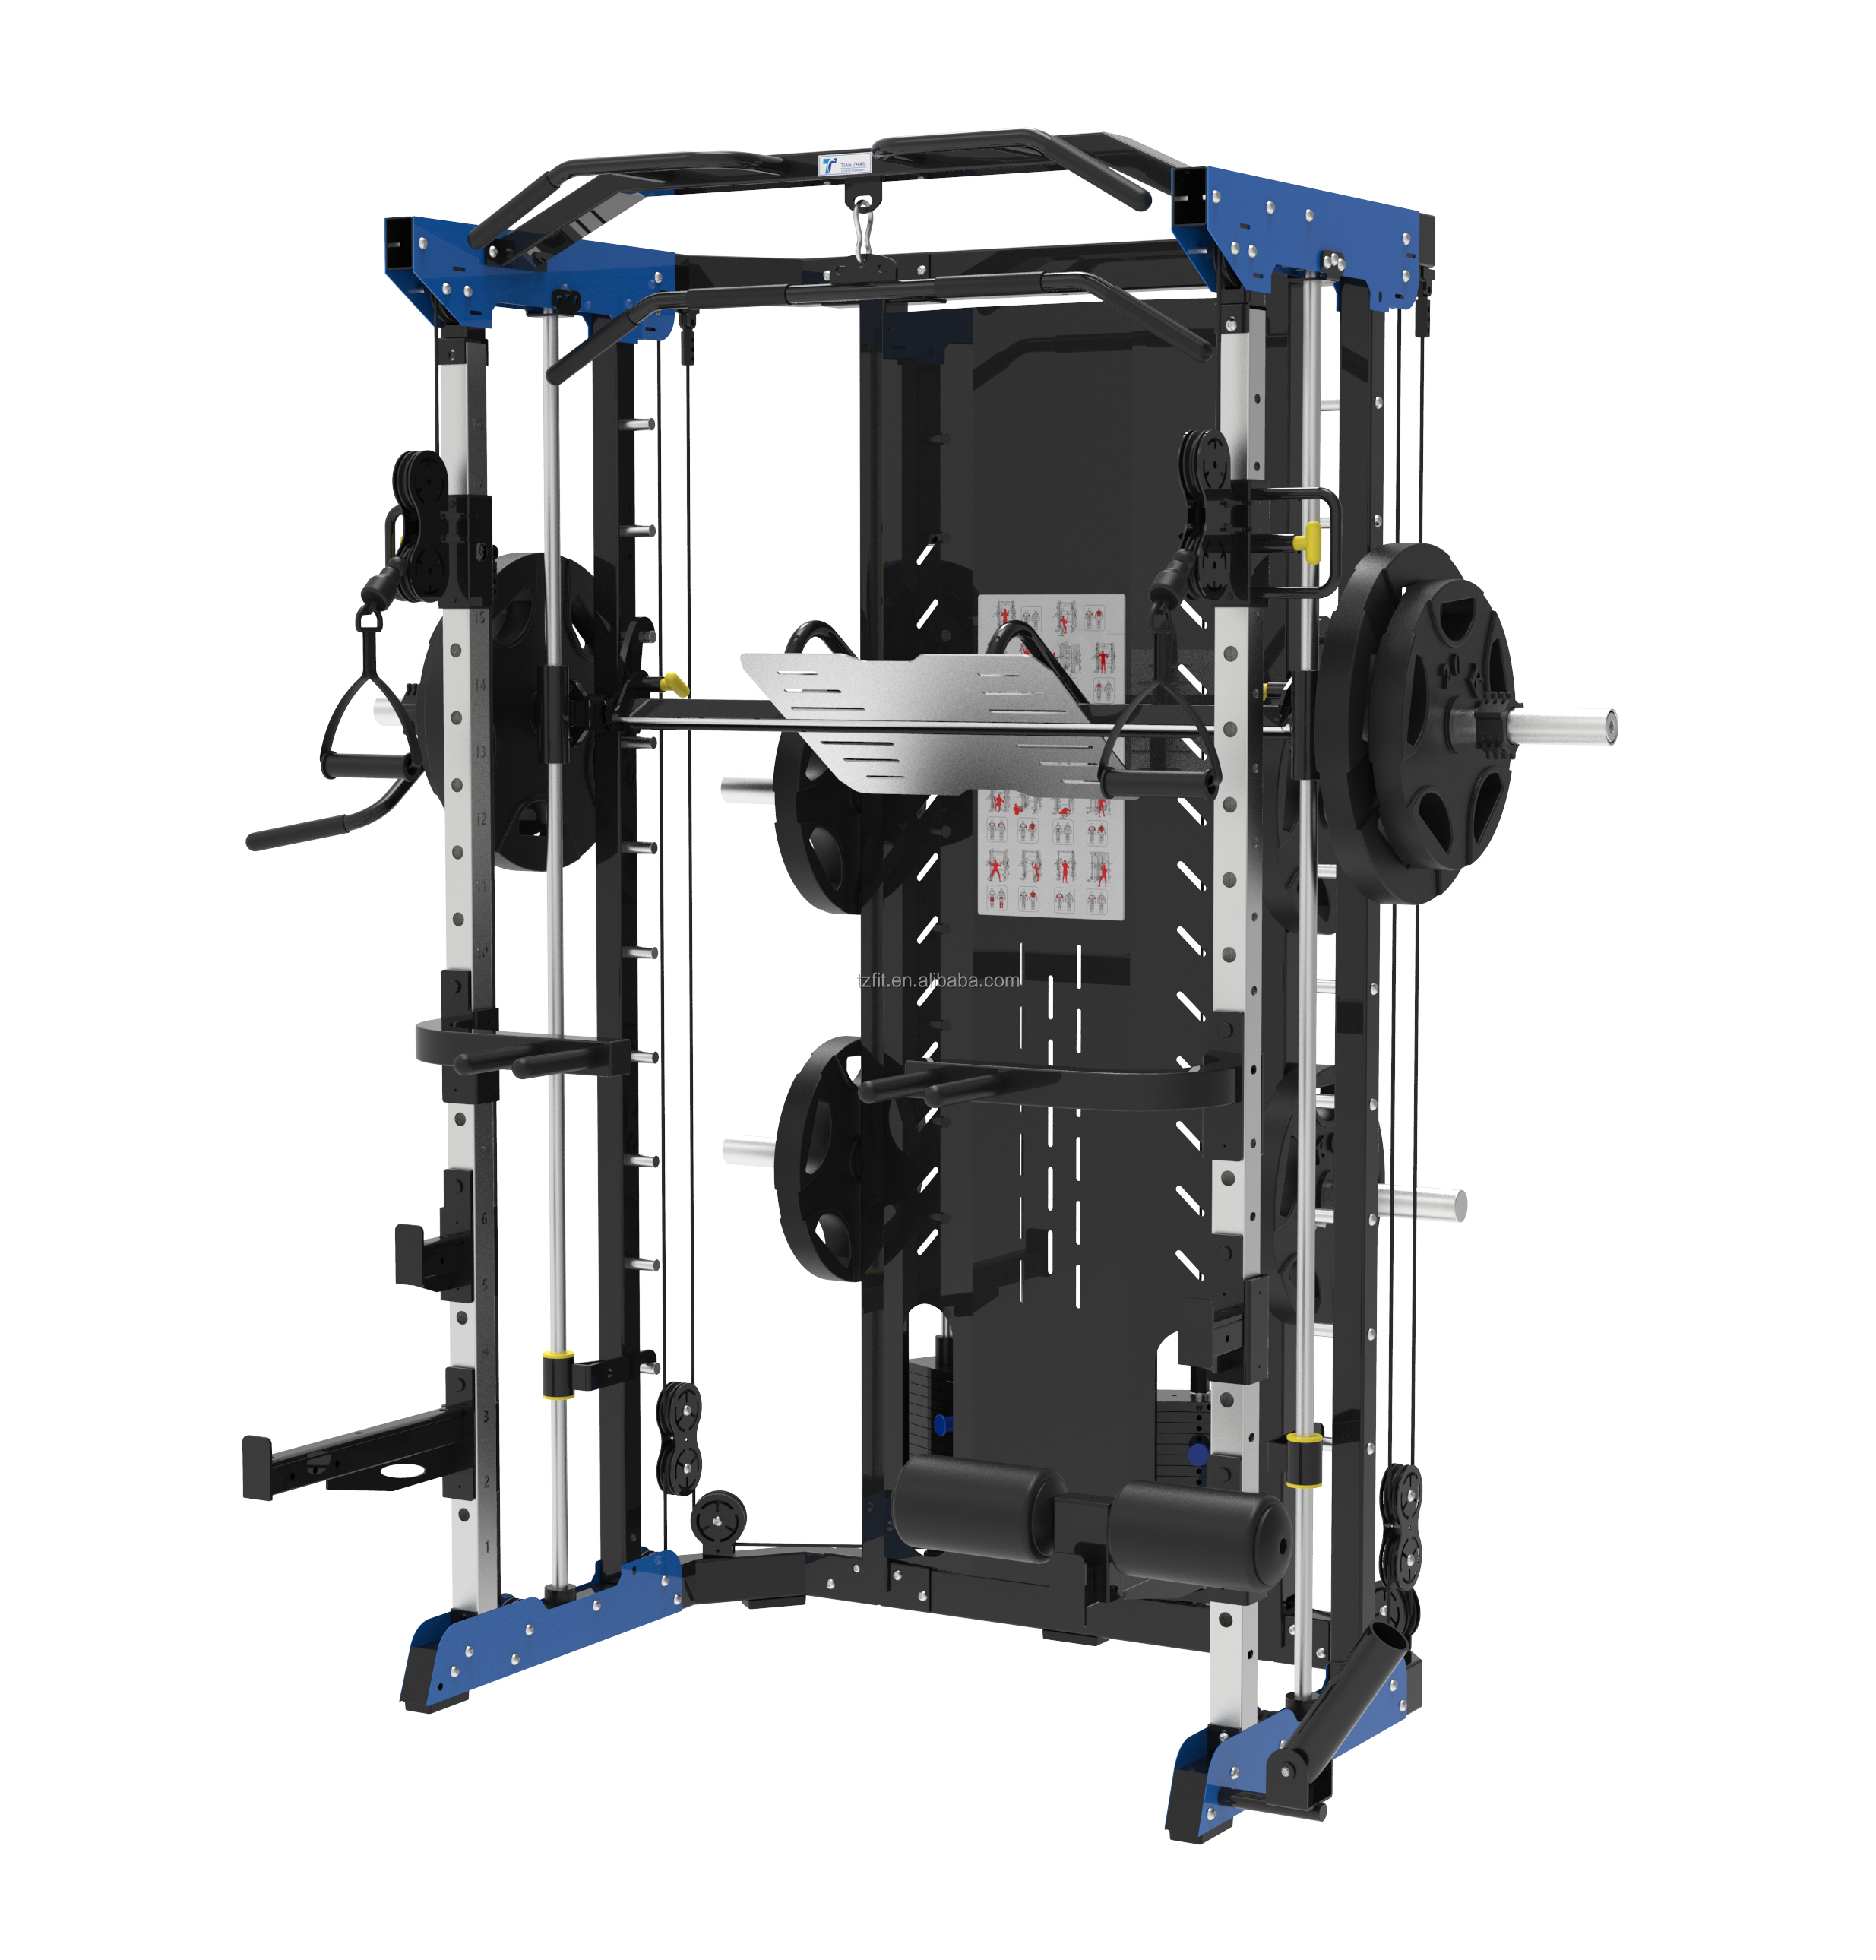 TZ-1006B Multifunctional Weight Lifting Smith Machine Gym Equipment Manufacturer With 12 Years Experience